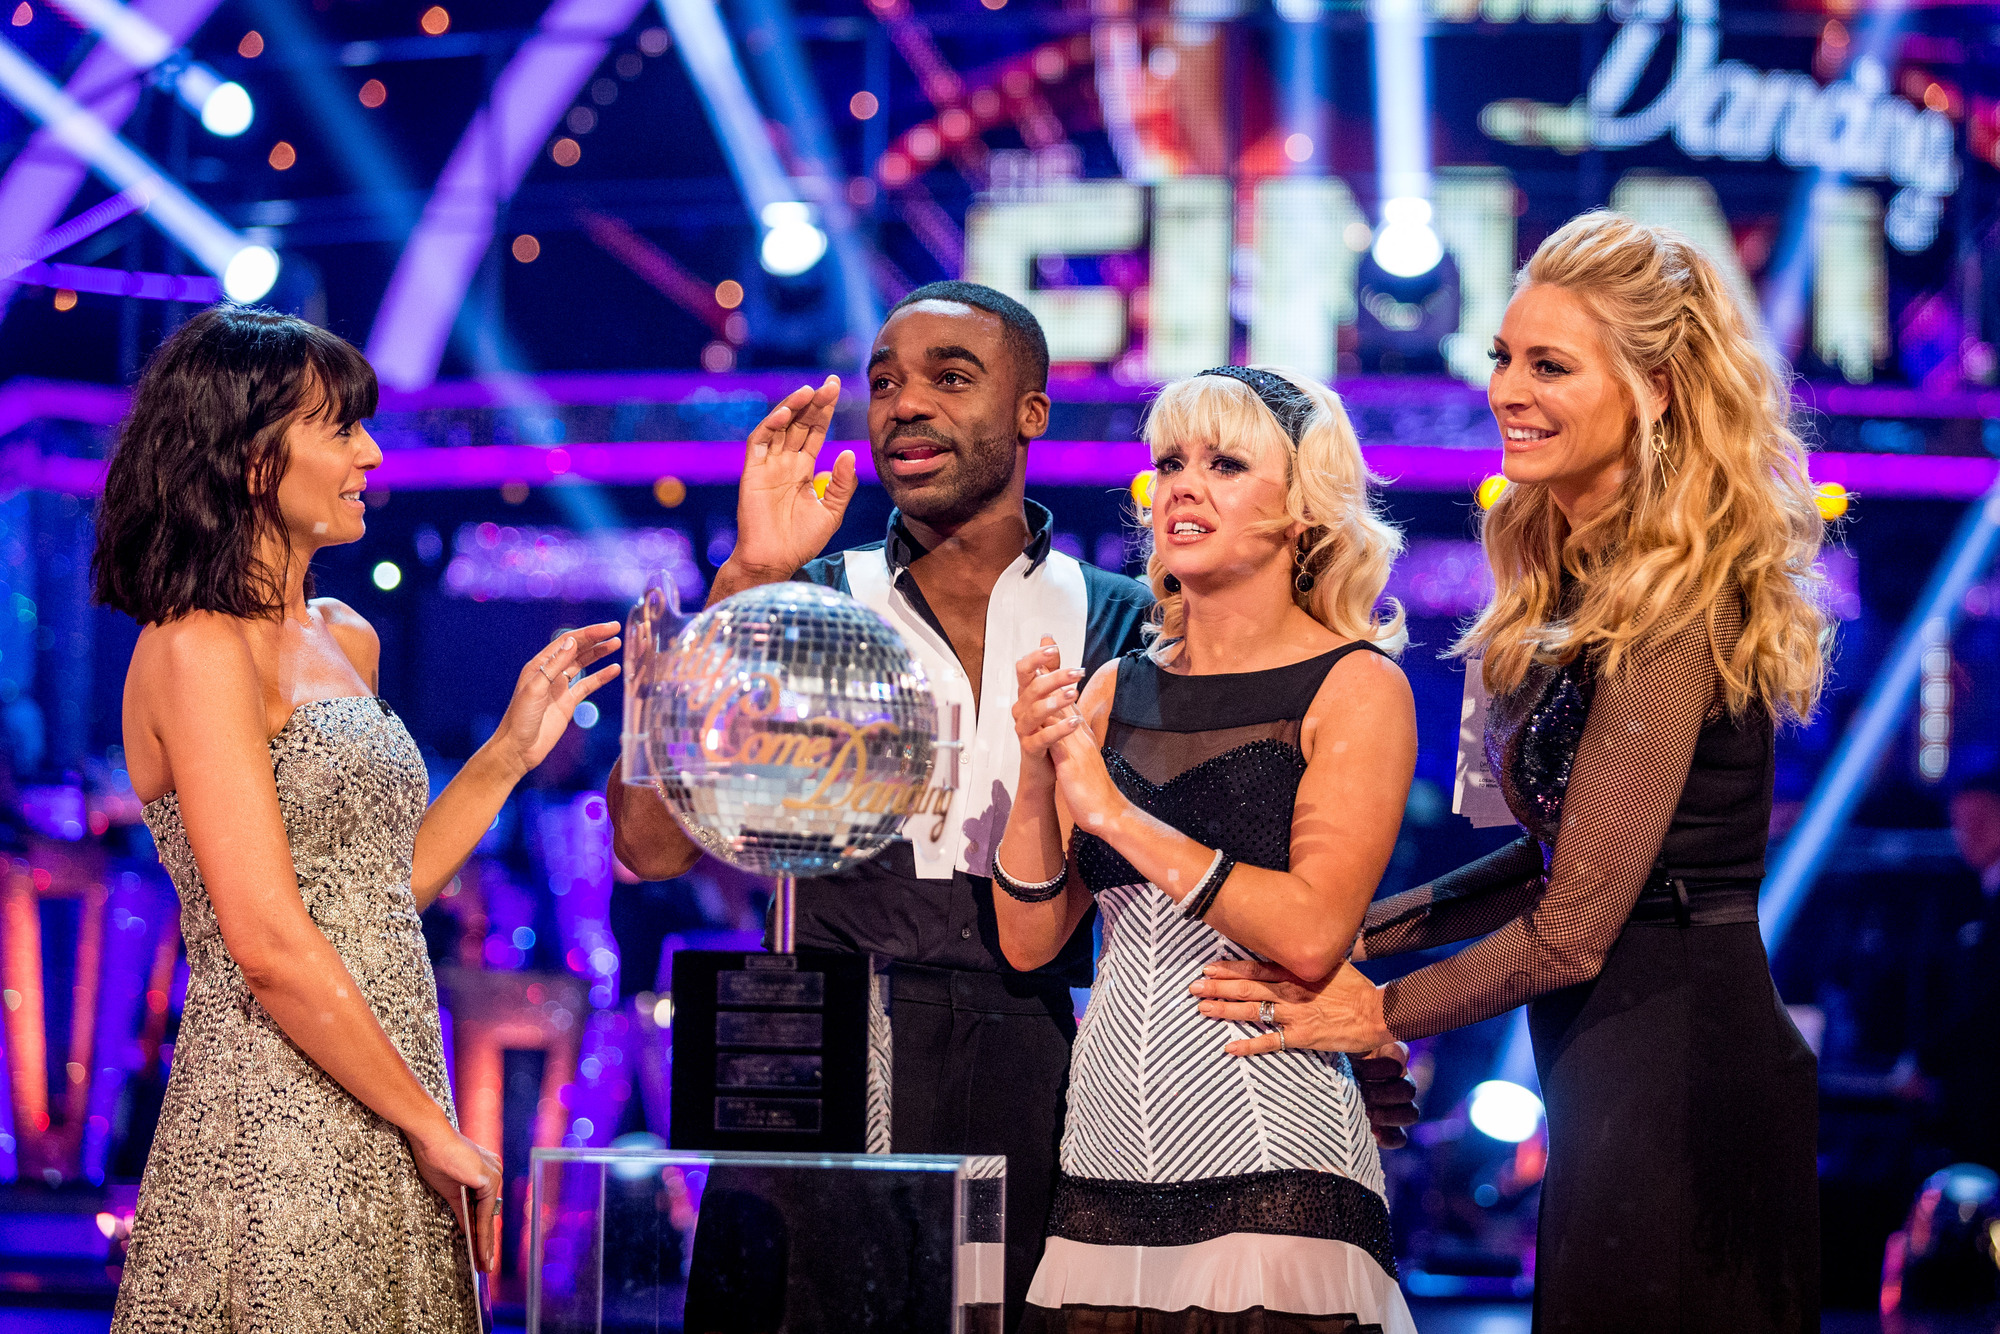 Claudia Winkleman, Ore Oduba, Joanne Clifton, Tess Daly - (C) BBC - Photographer: Guy Levy